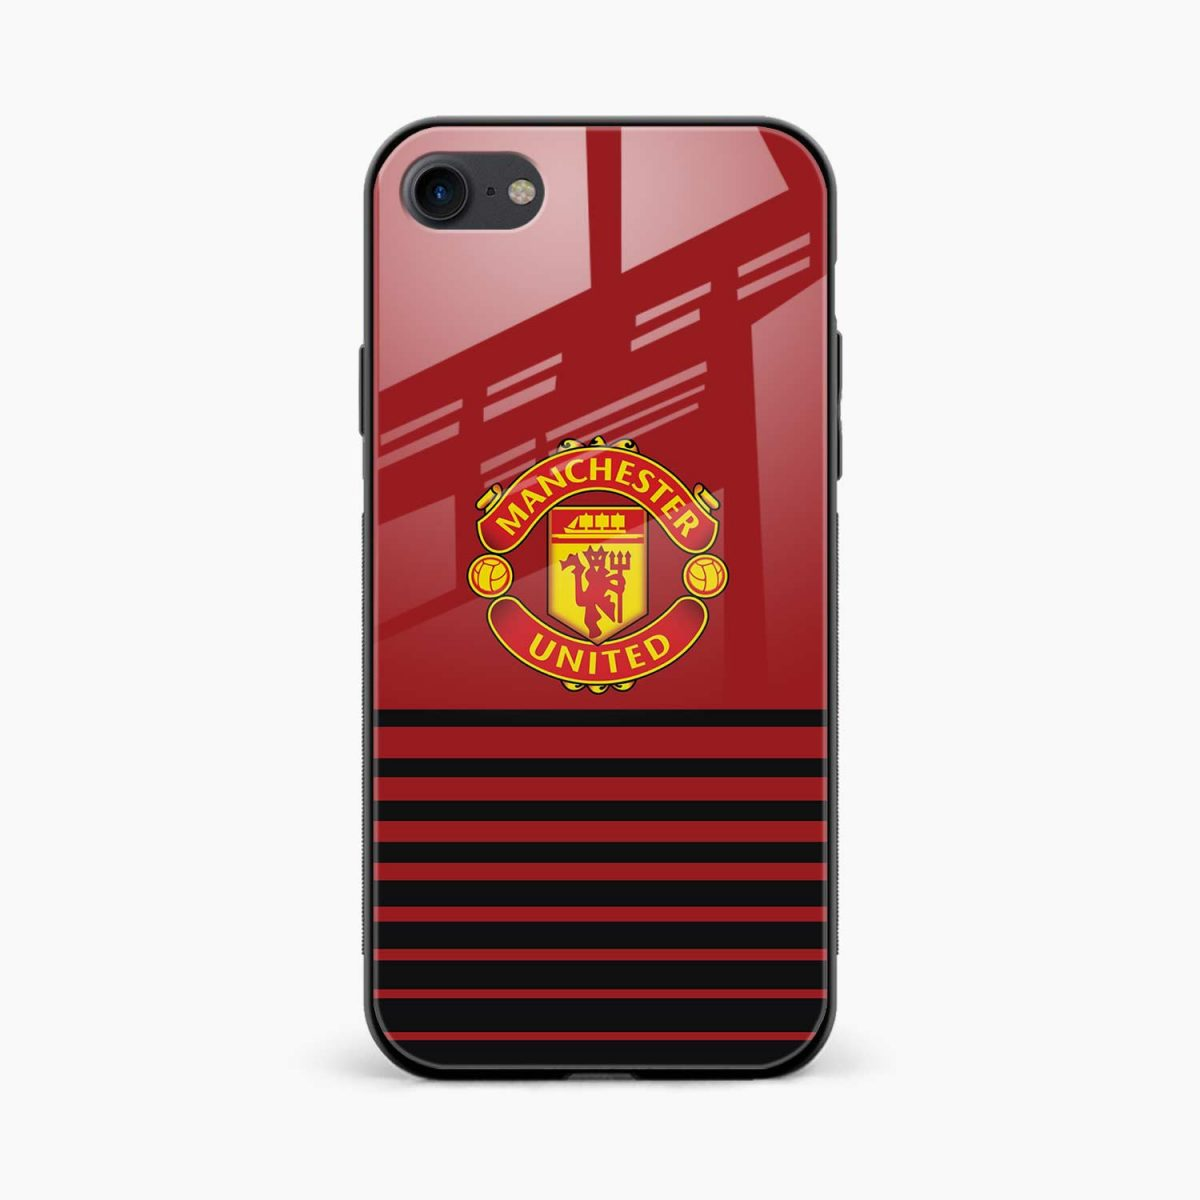 manchester united front view apple iphone 6 7 8 se back cover